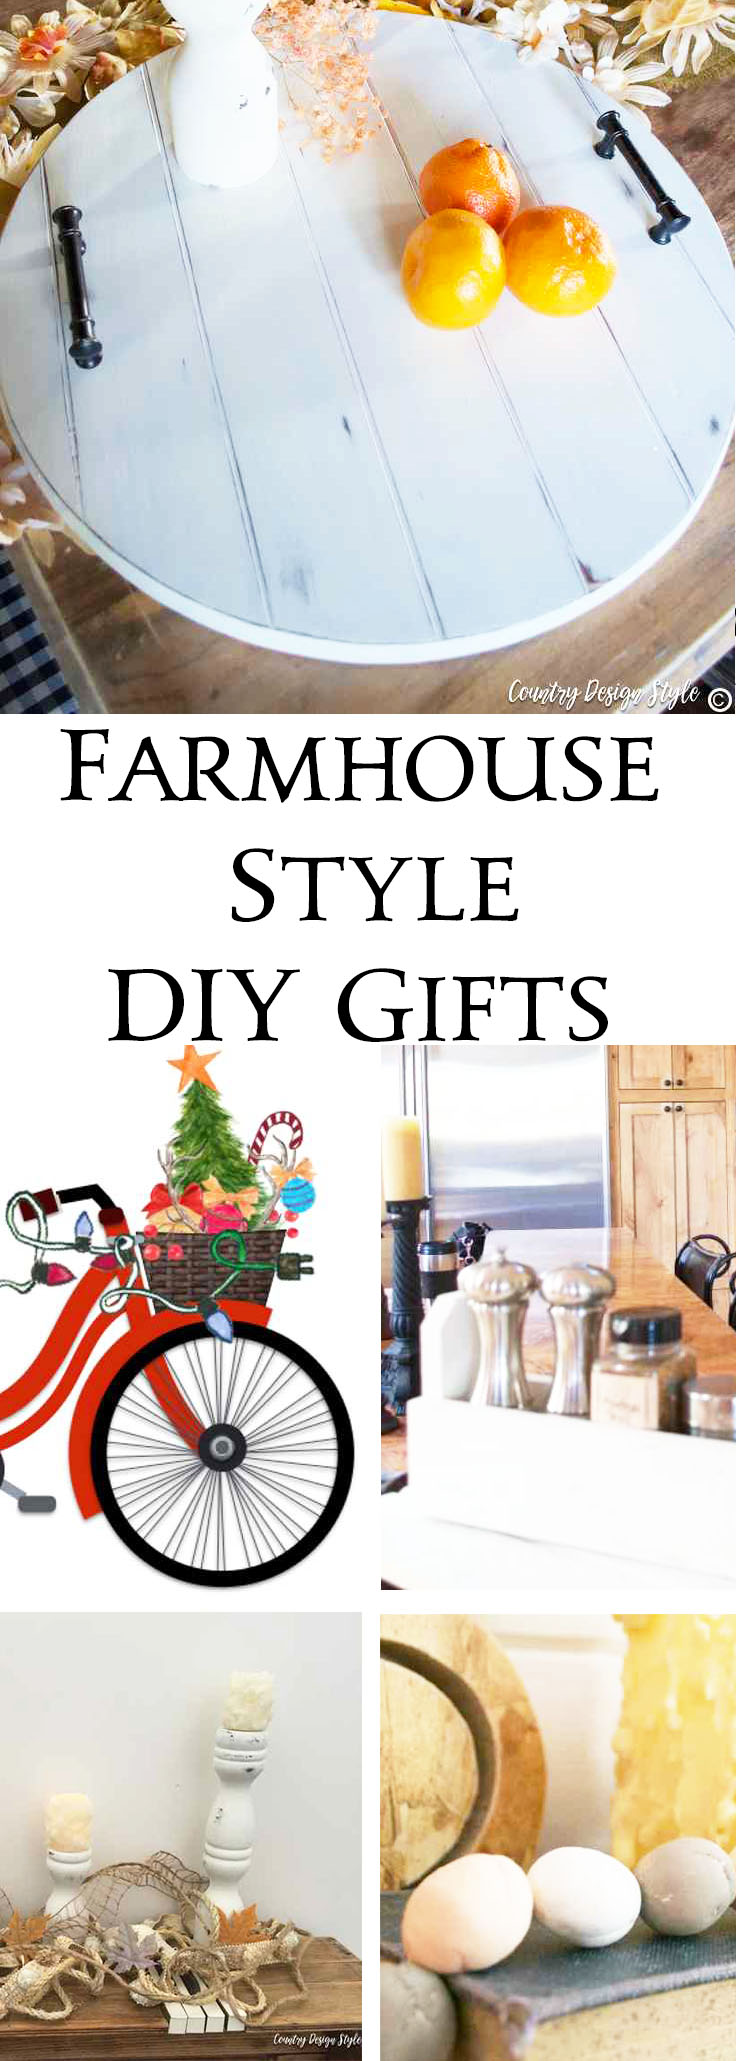 farmhouse DIY gifts | Country Design Style | countrydesignstyle.com